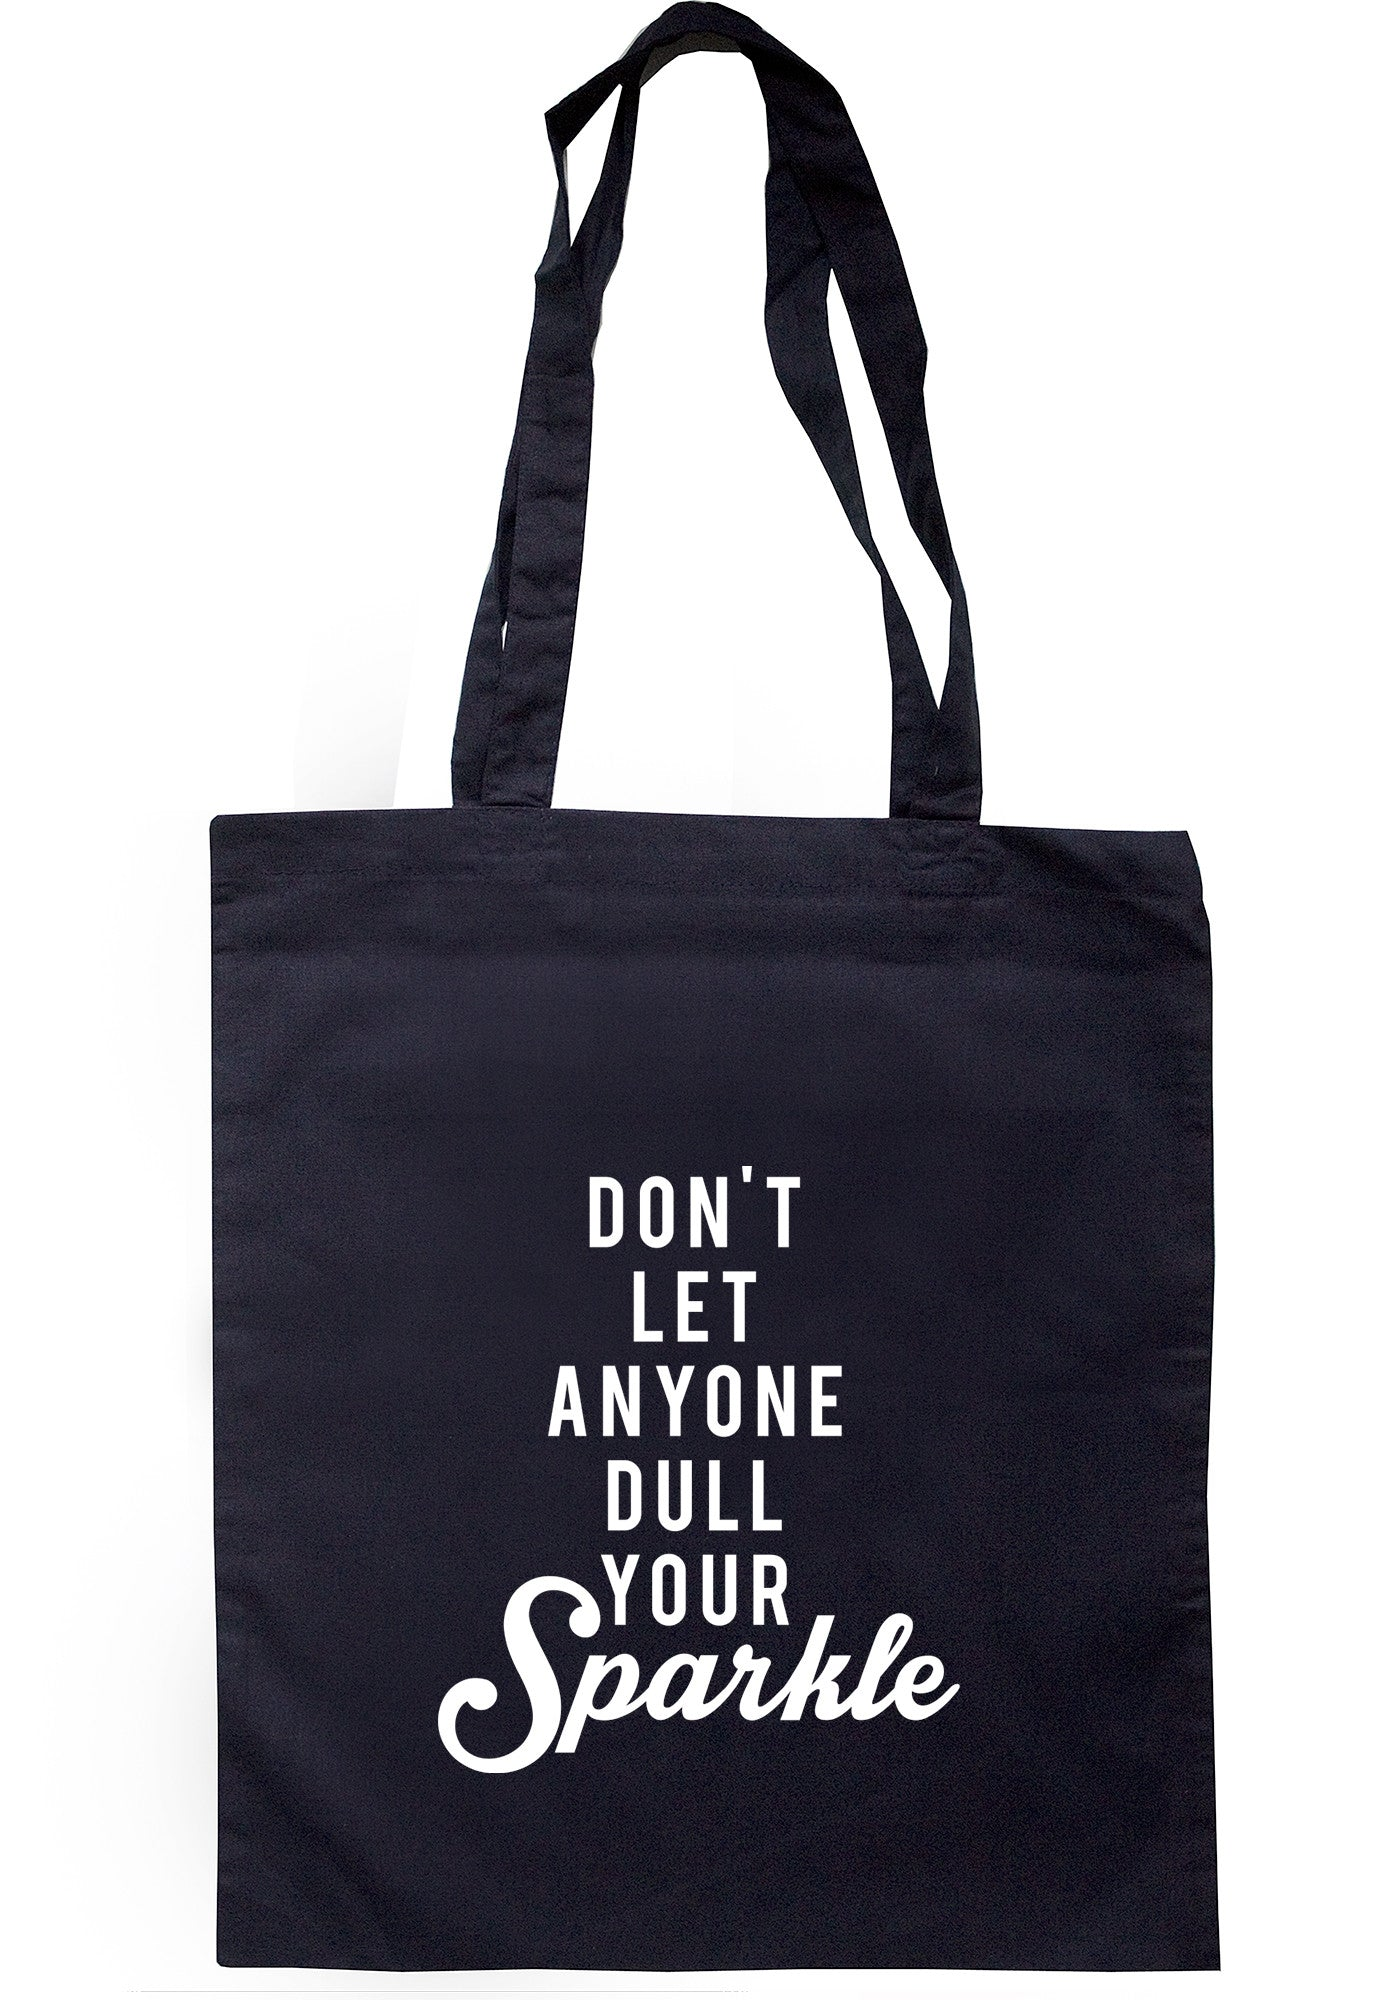 Don't Let Anyone Dull Your Sparkle Tote Bag TB0572 - Illustrated Identity Ltd.